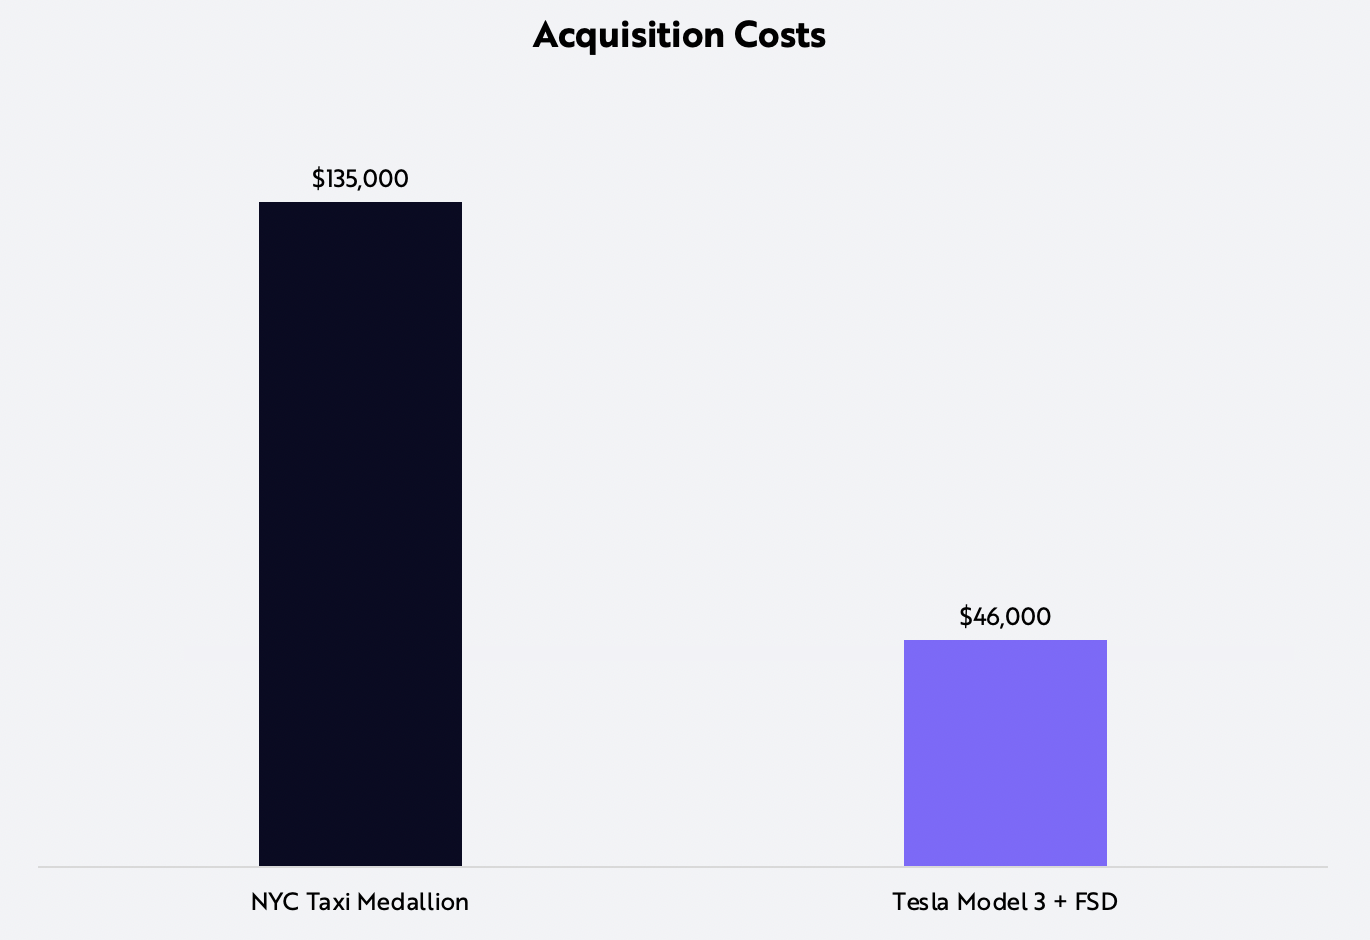 ride-hailing, Tesla, acquisition cost